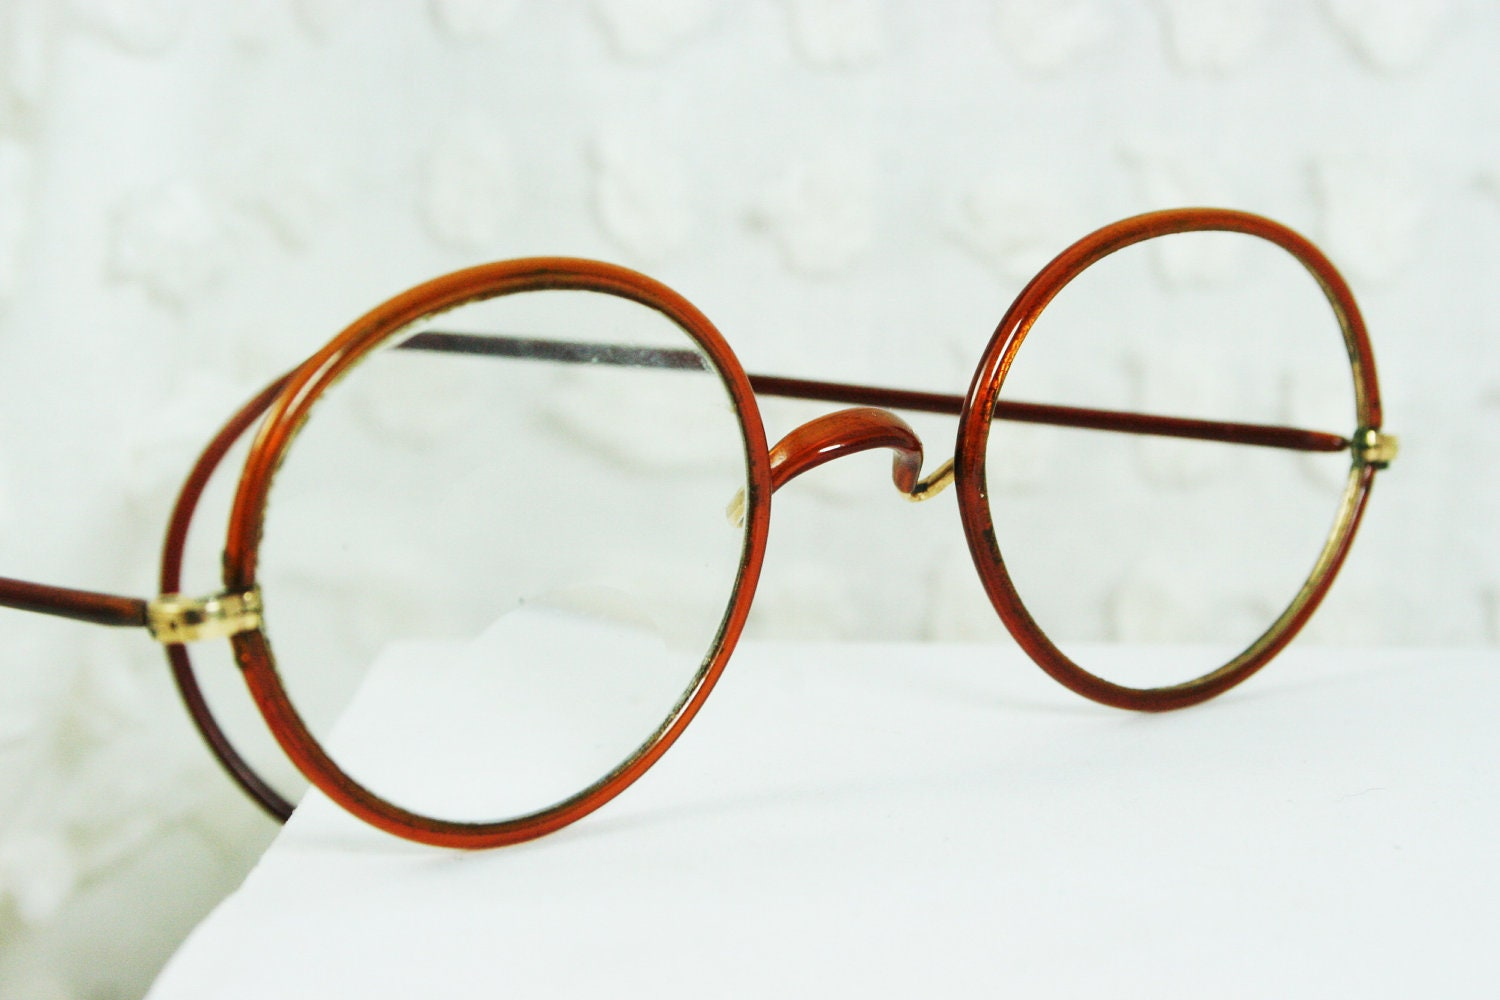 Eyeglass Frames With Cable Temples : 30s Eyeglasses 1930s Round Glasses Butterscotch by DIAeyewear